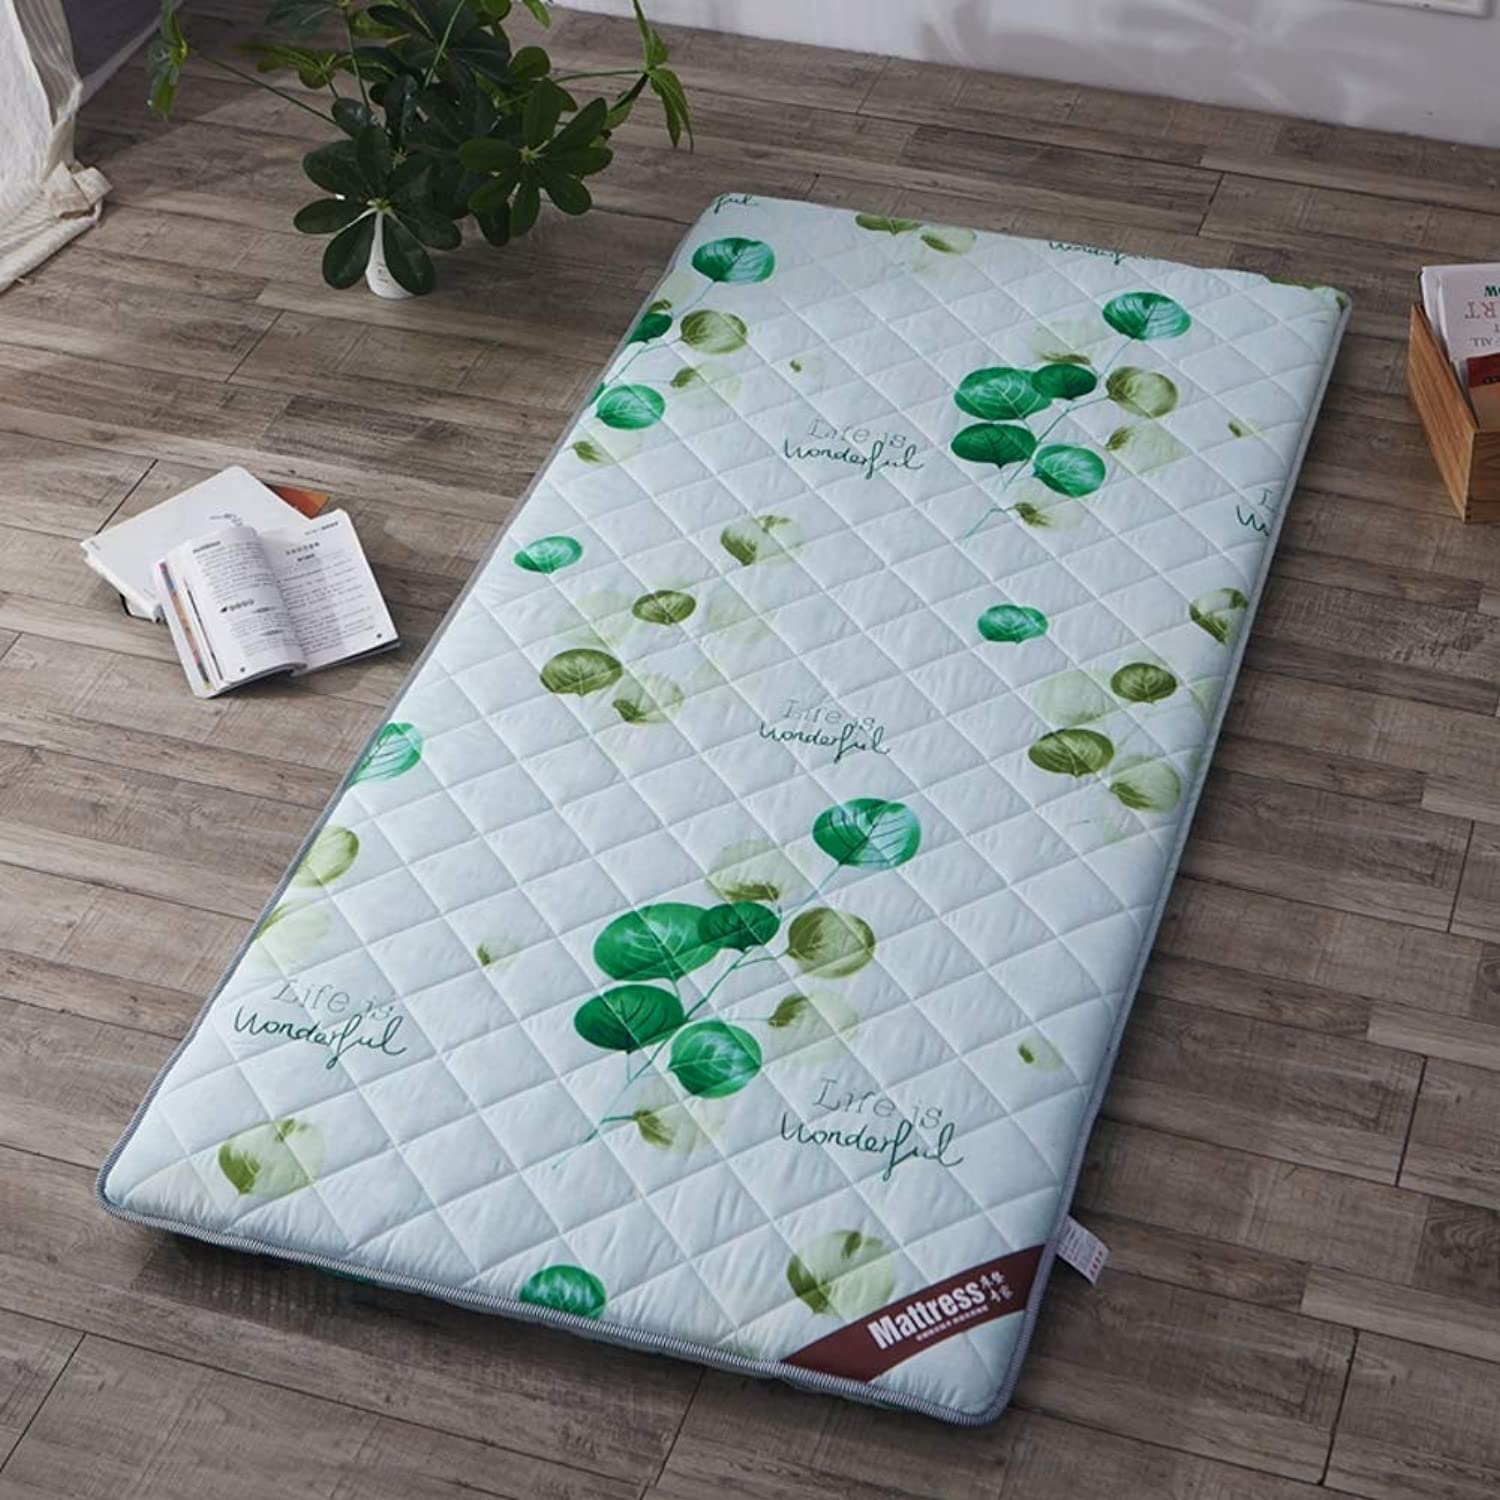 Breathable Mattress Mat Topper Pad, Foldable Sleeping Bed Pad Tatami Bed Roll Floor Mat Japanese for Dorm Home -f 90x200cm(35x79inch)